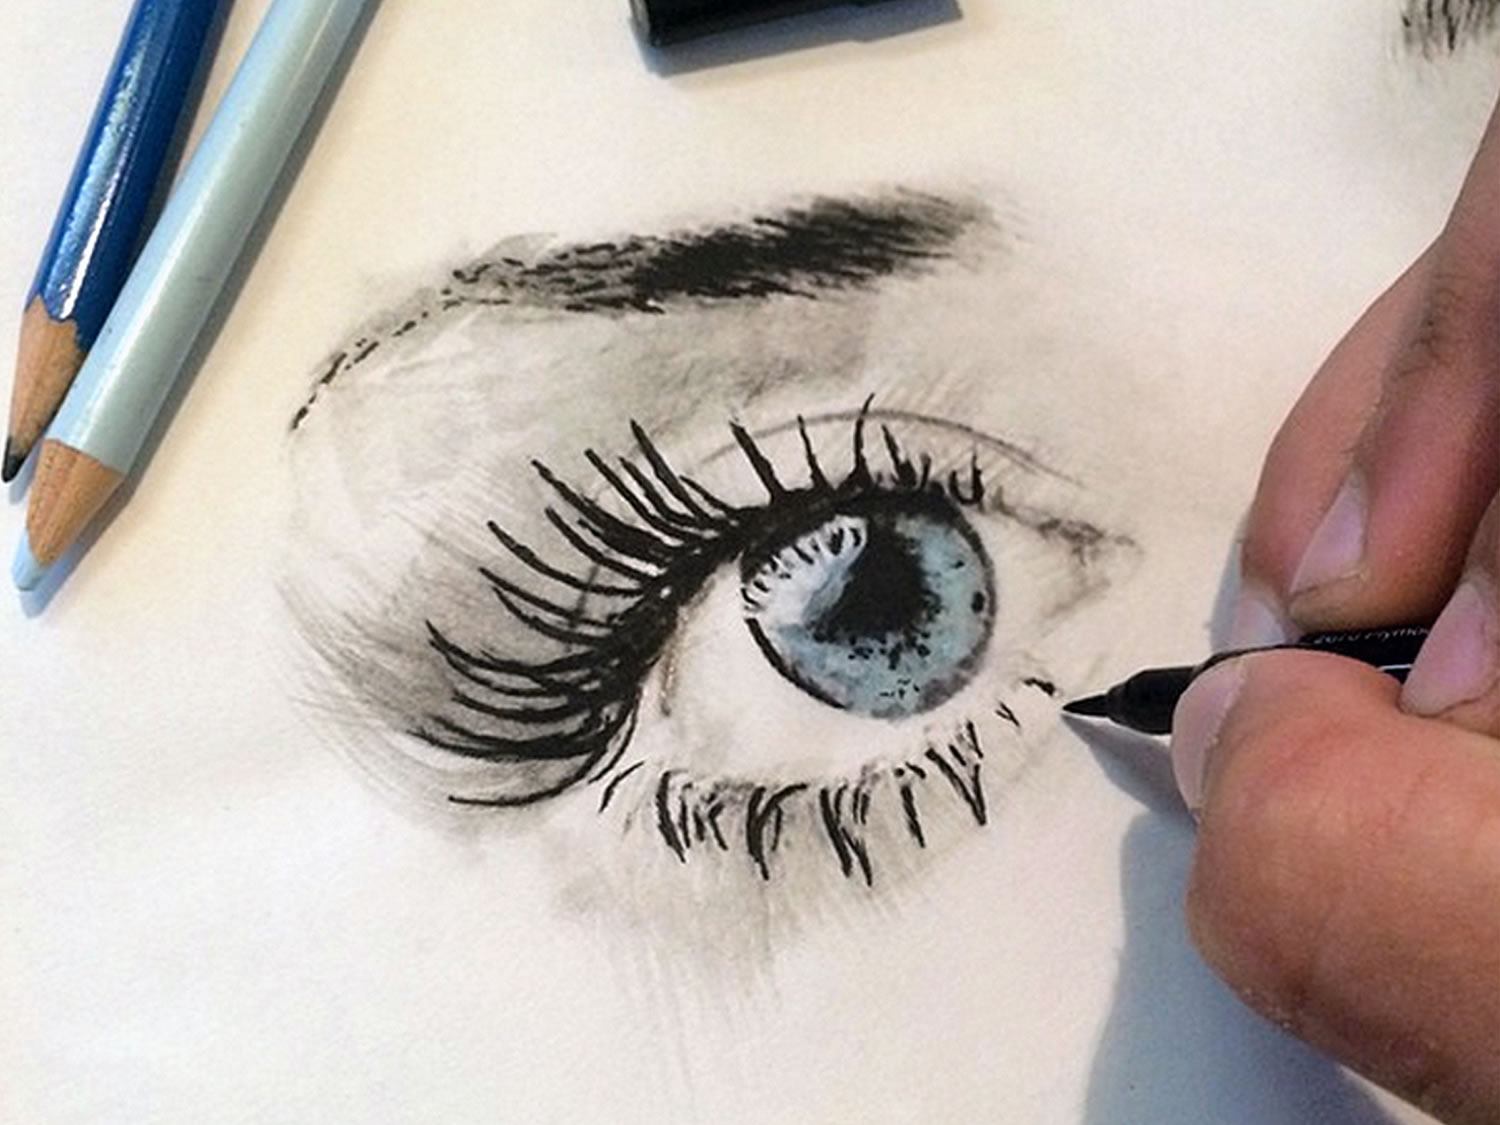 the making of an eye, 3d drawing by joshua krecioch